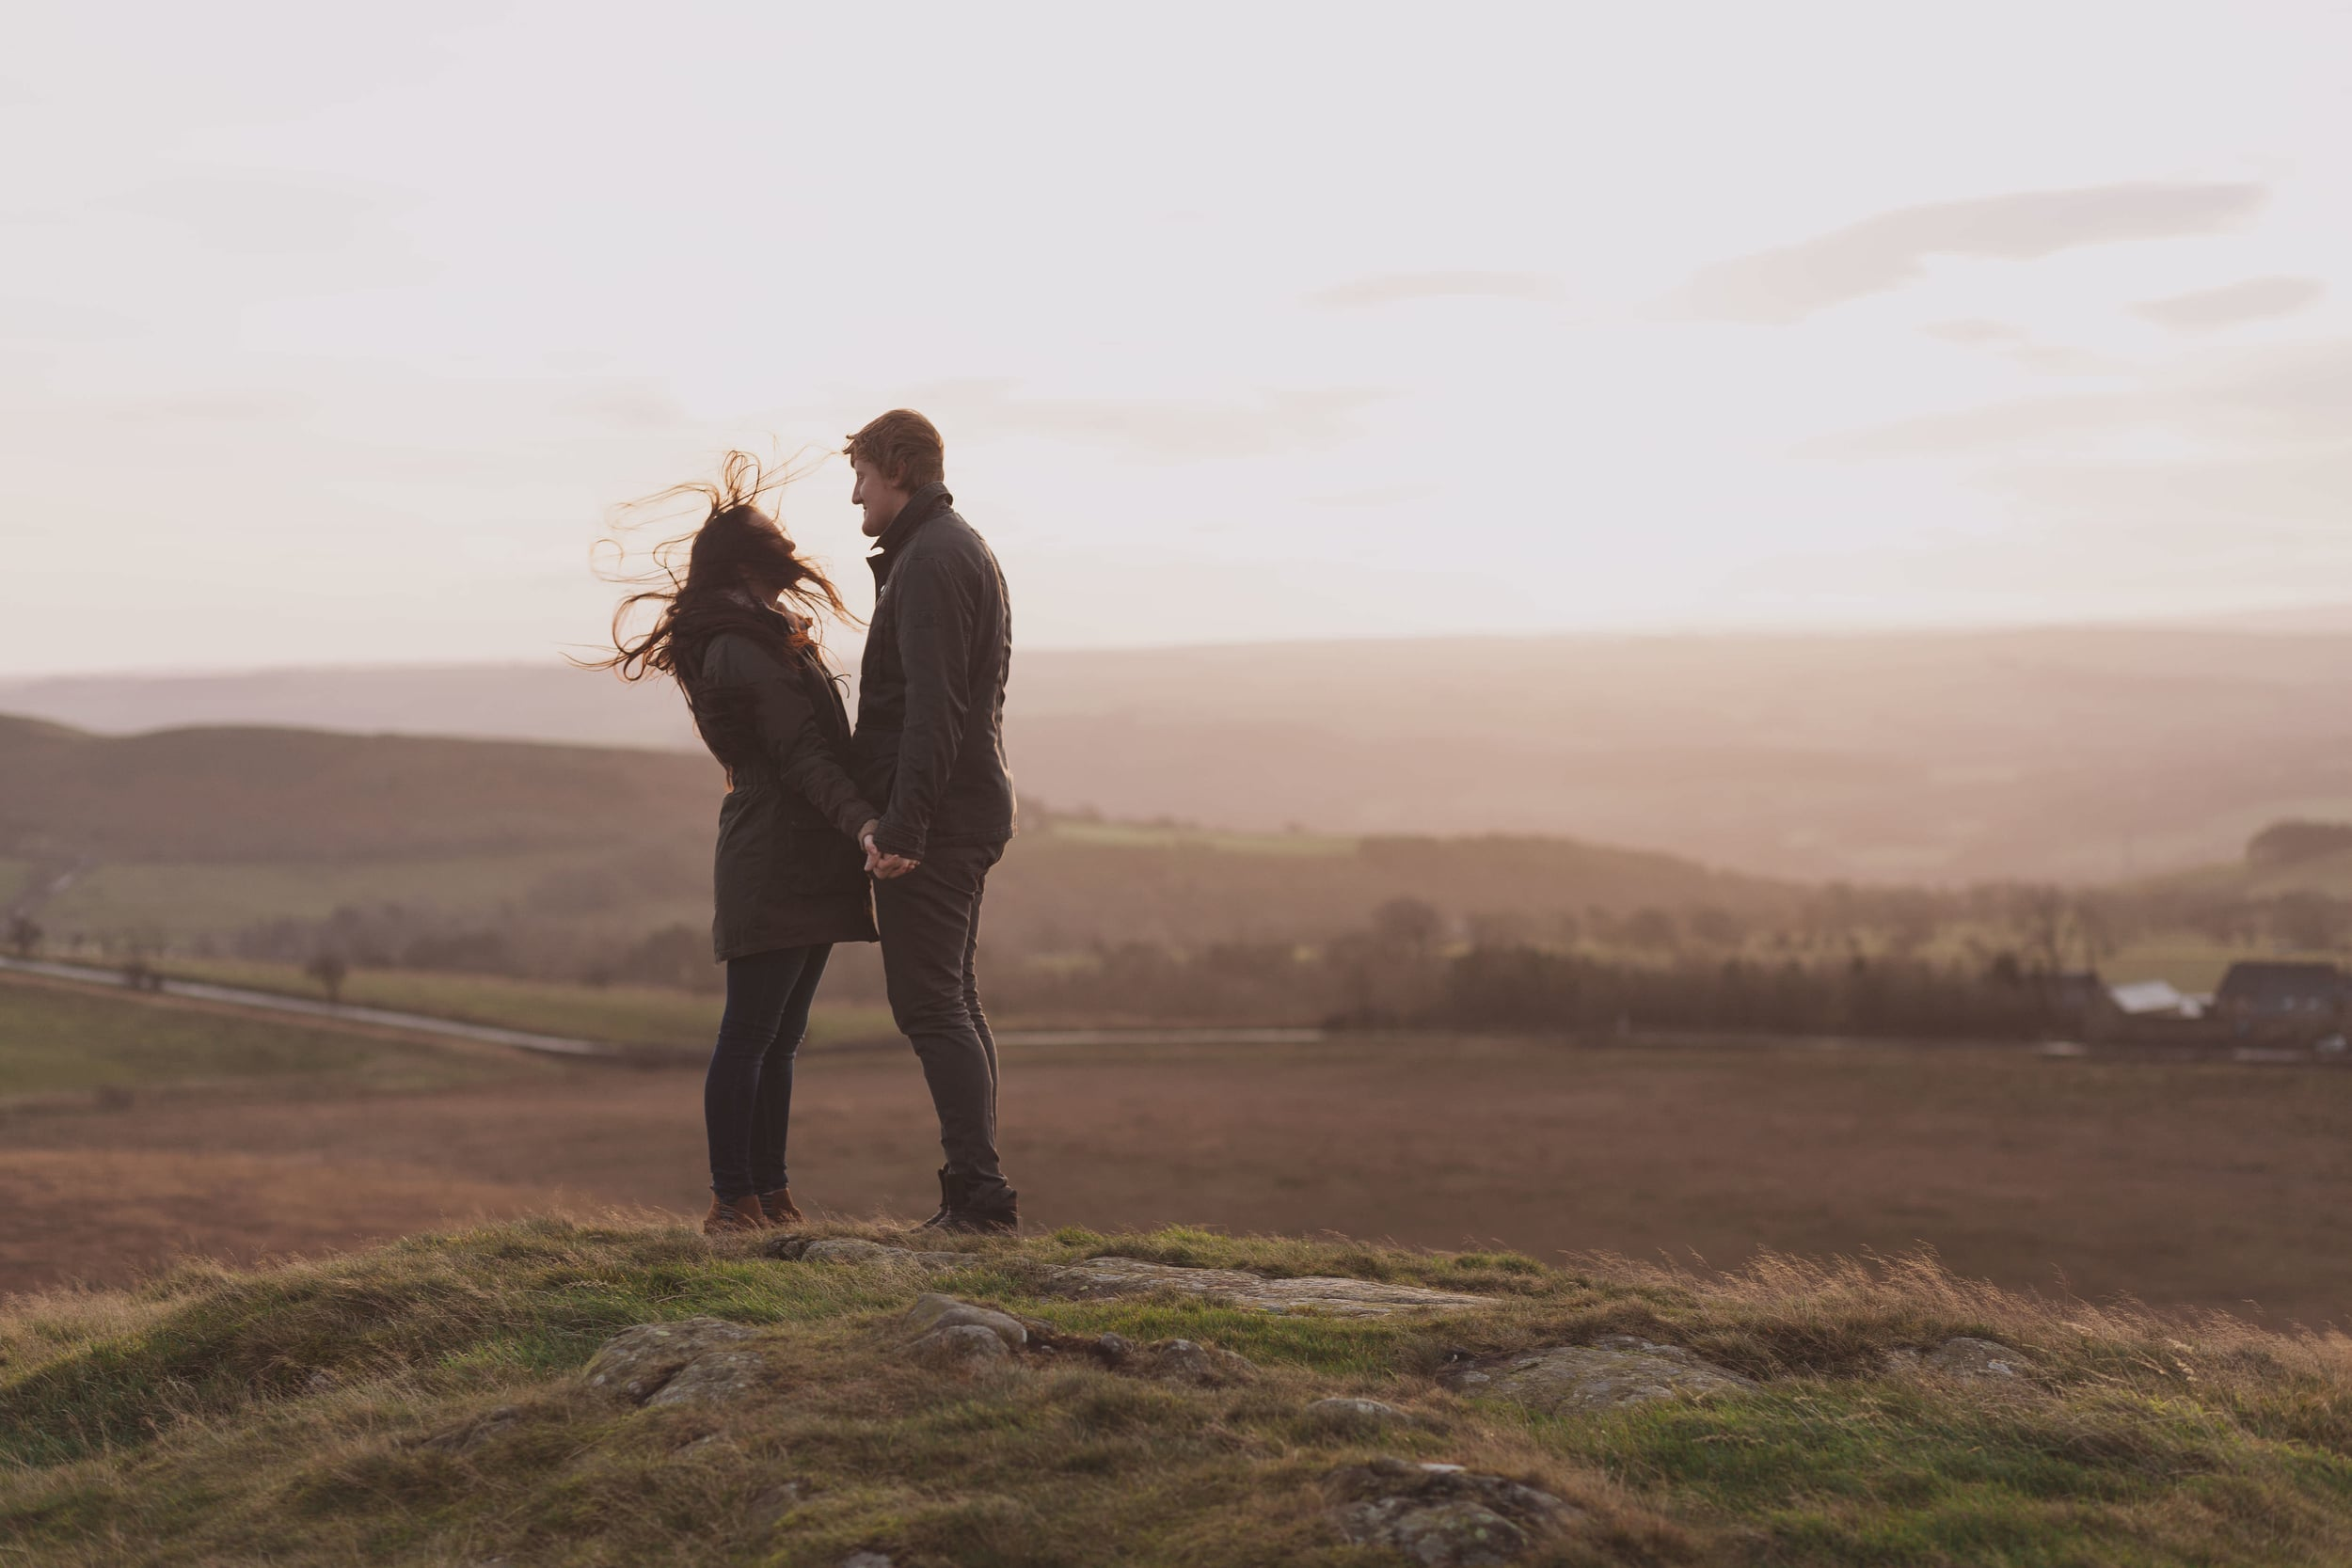 Northumberland Engagement Photograph // Rebecca & Chris // Hair blowing in the wind